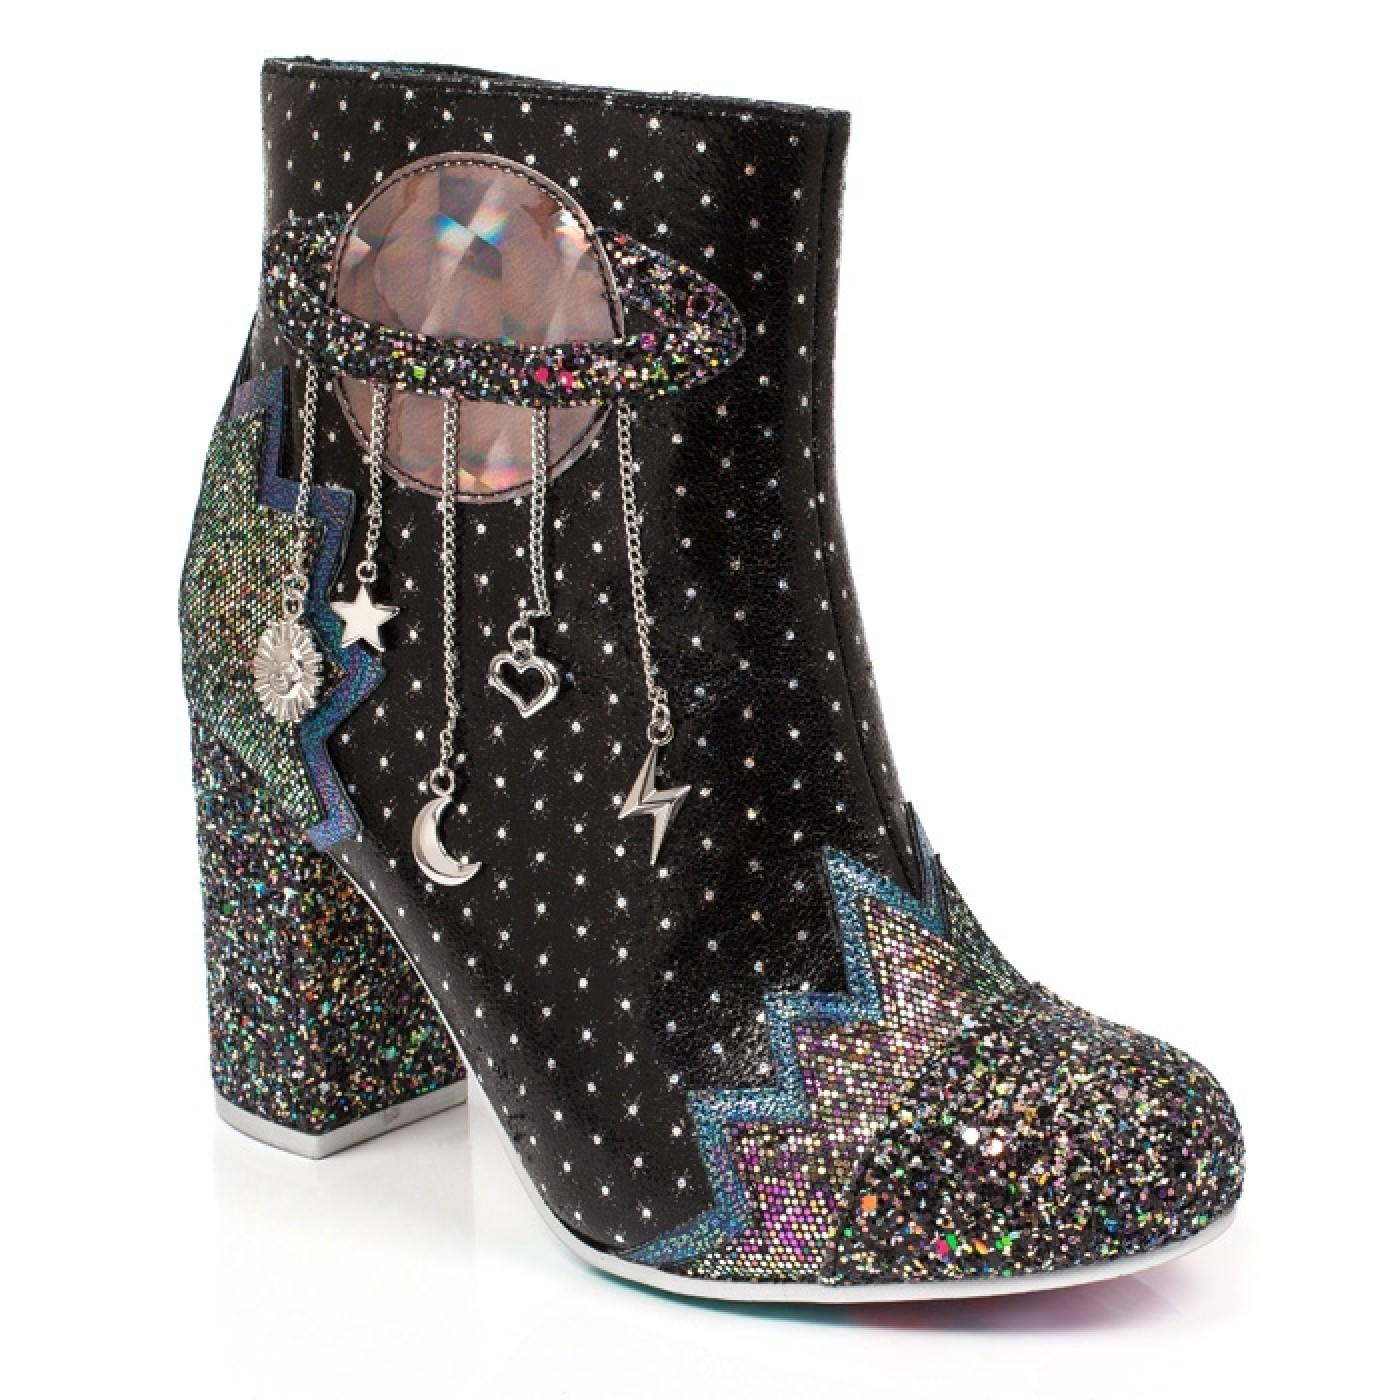 Intergalactic IRREGULAR CHOICE 70s Space Boots B